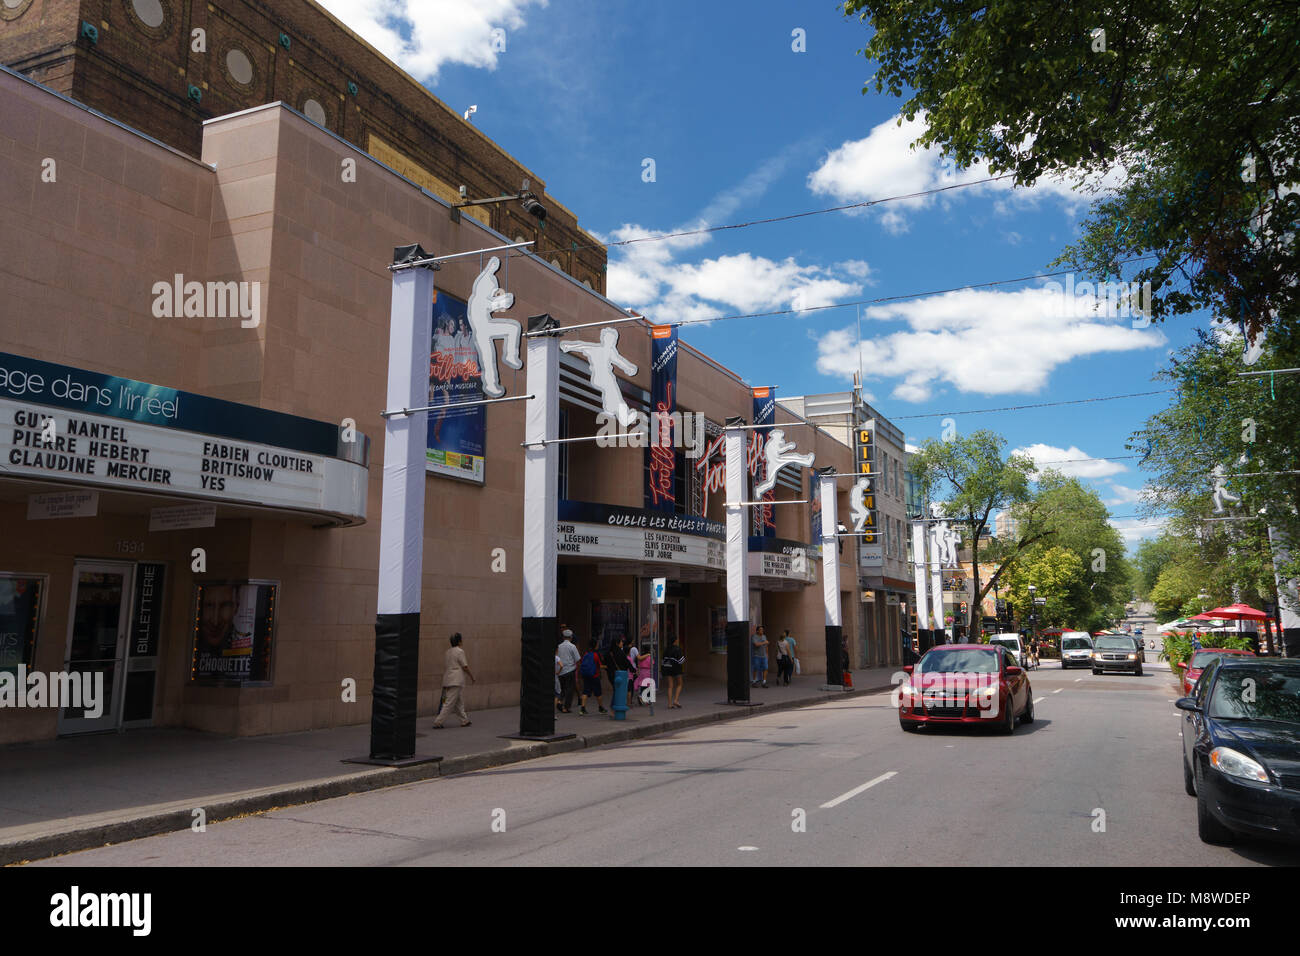 St Denis Theater on St Denis street, Montreal, province of Quebec, Canada. - Stock Image